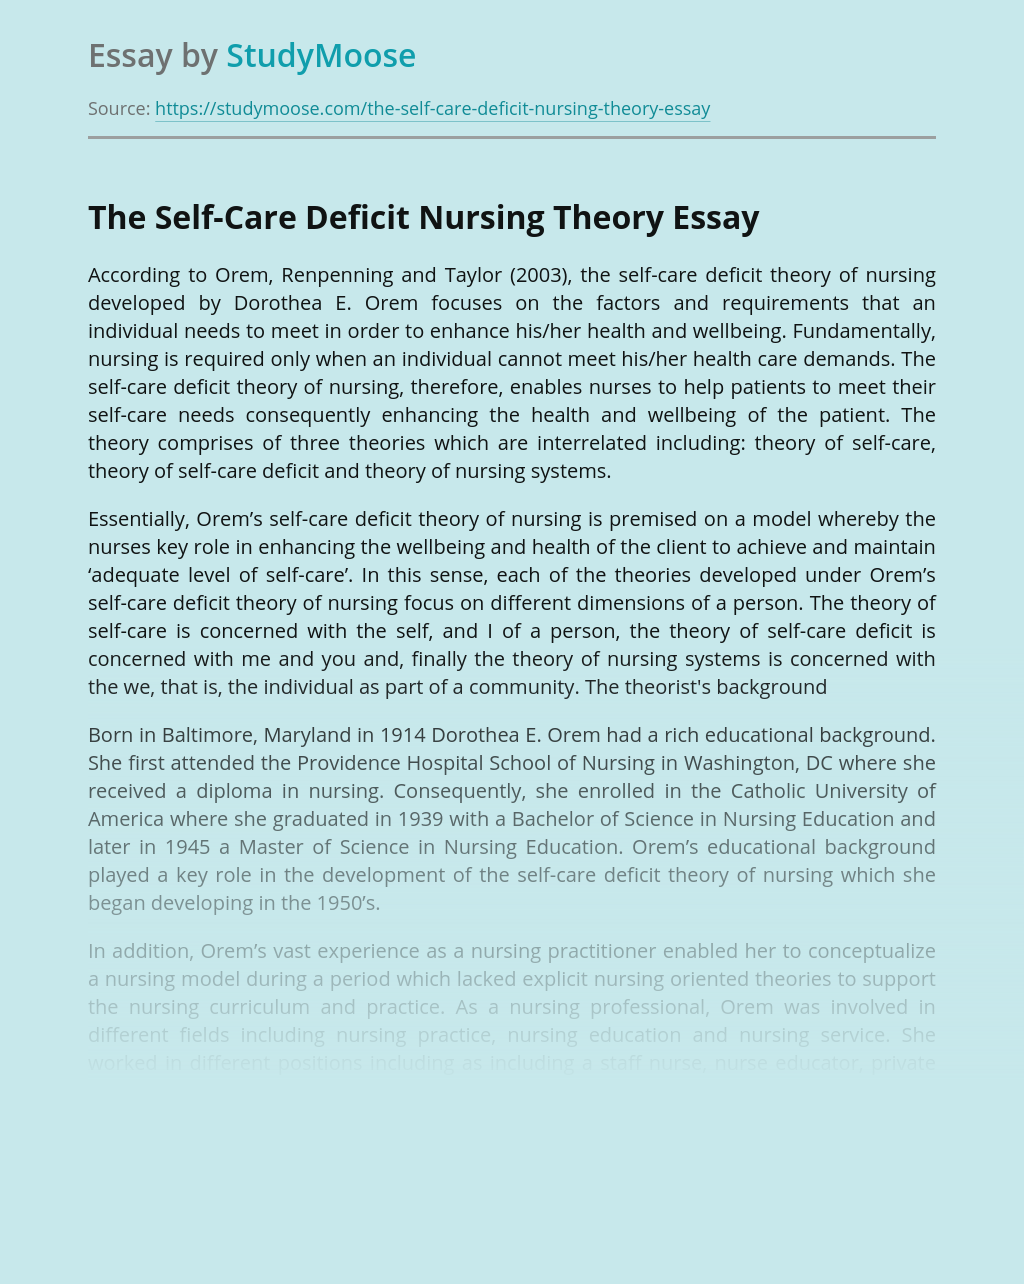 The Self-Care Deficit Nursing Theory